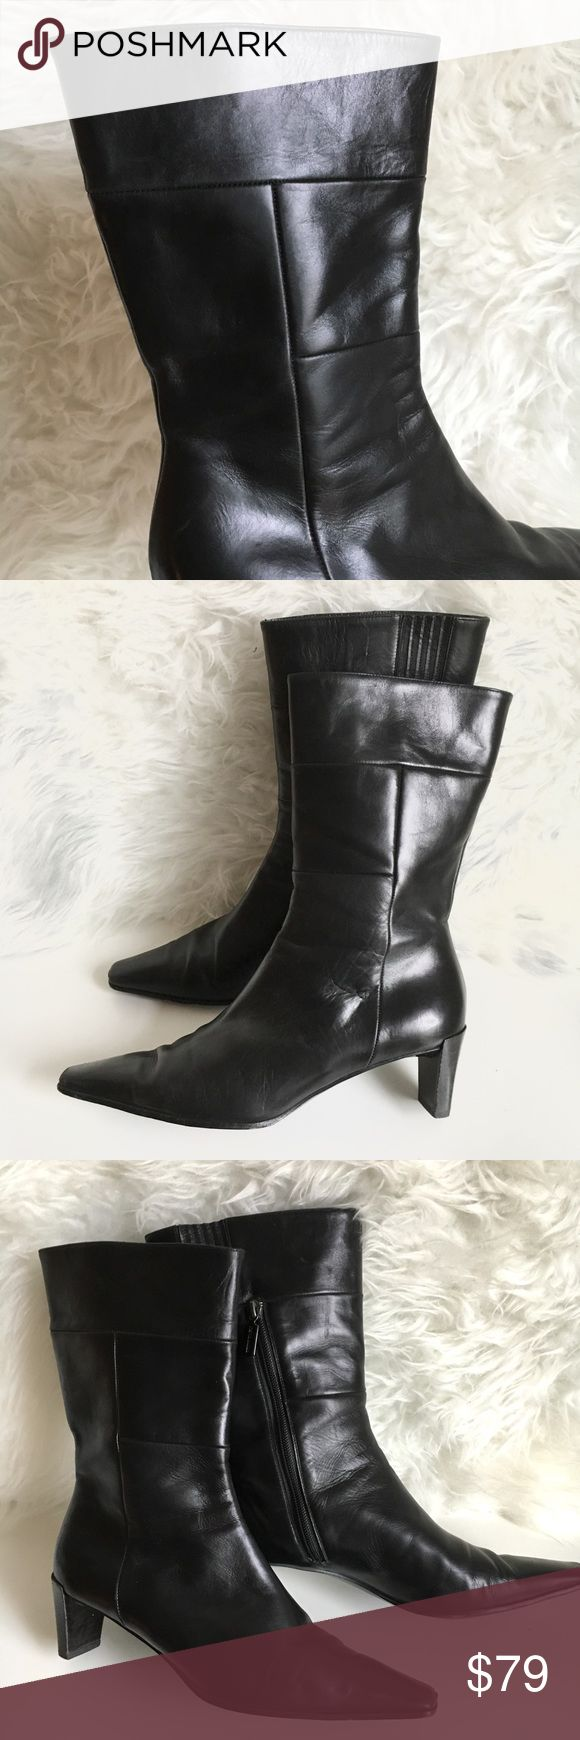 Bruno Magli Mid Calf Zip Boots  8.5 made in italy Bruno Magli Mid Calf Leather Side Zip Boots  size 8.5 made in Italy. Excellent preowned condition minimal signs of wear as shown. Excellent quality leather. Very comfortable and stylish boot. True to size. Bruno Magli Shoes Ankle Boots & Booties